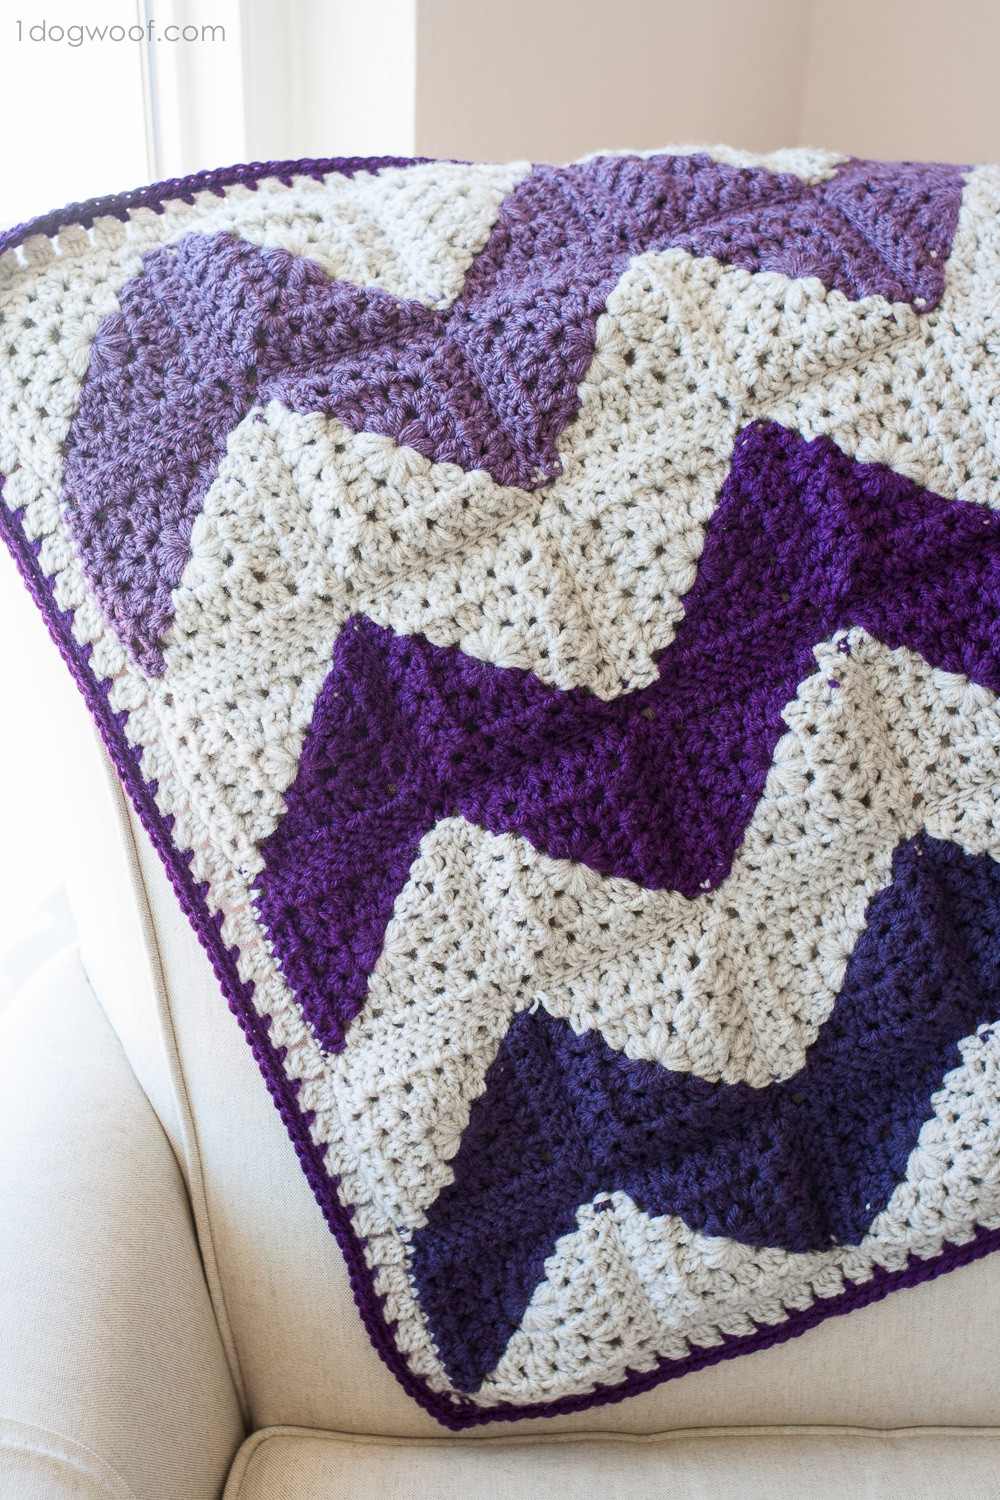 Best Of Granny Squares Chevron Afghan Crochet Pattern E Dog Woof Granny Square Afghan Pattern Beginners Of Superb 24 Pictures Granny Square Afghan Pattern Beginners